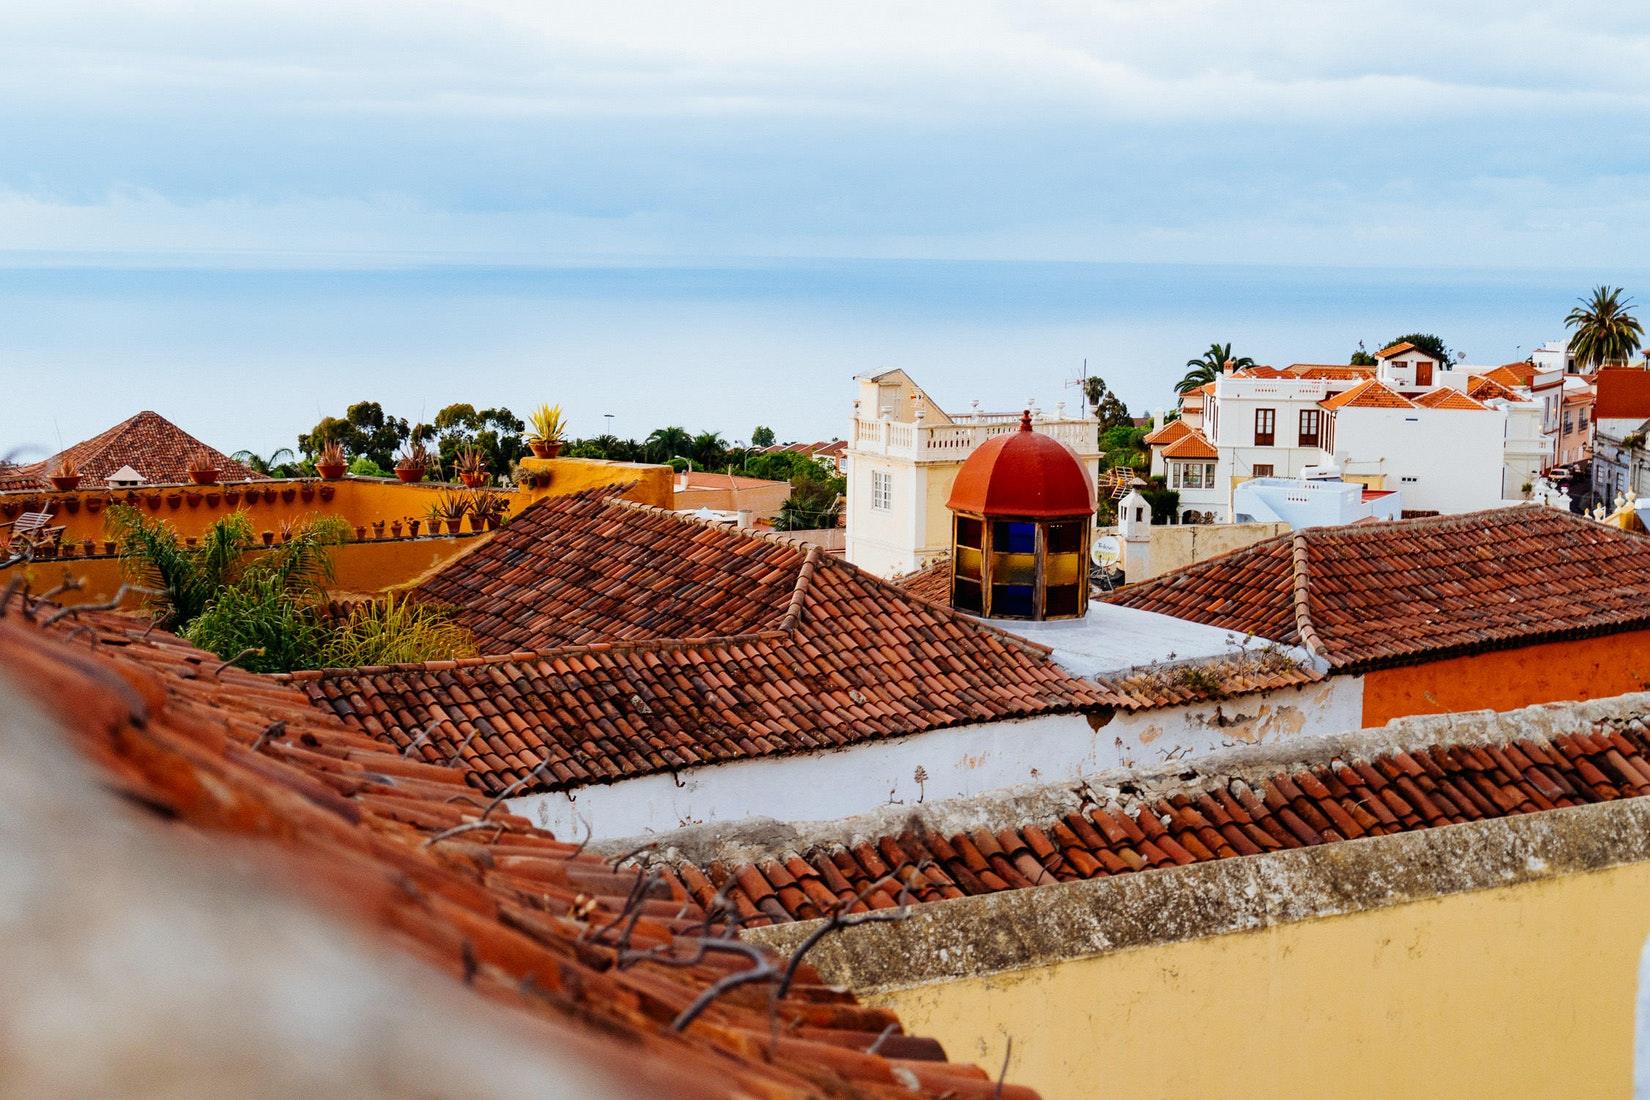 Looking over la Orotava from a roof